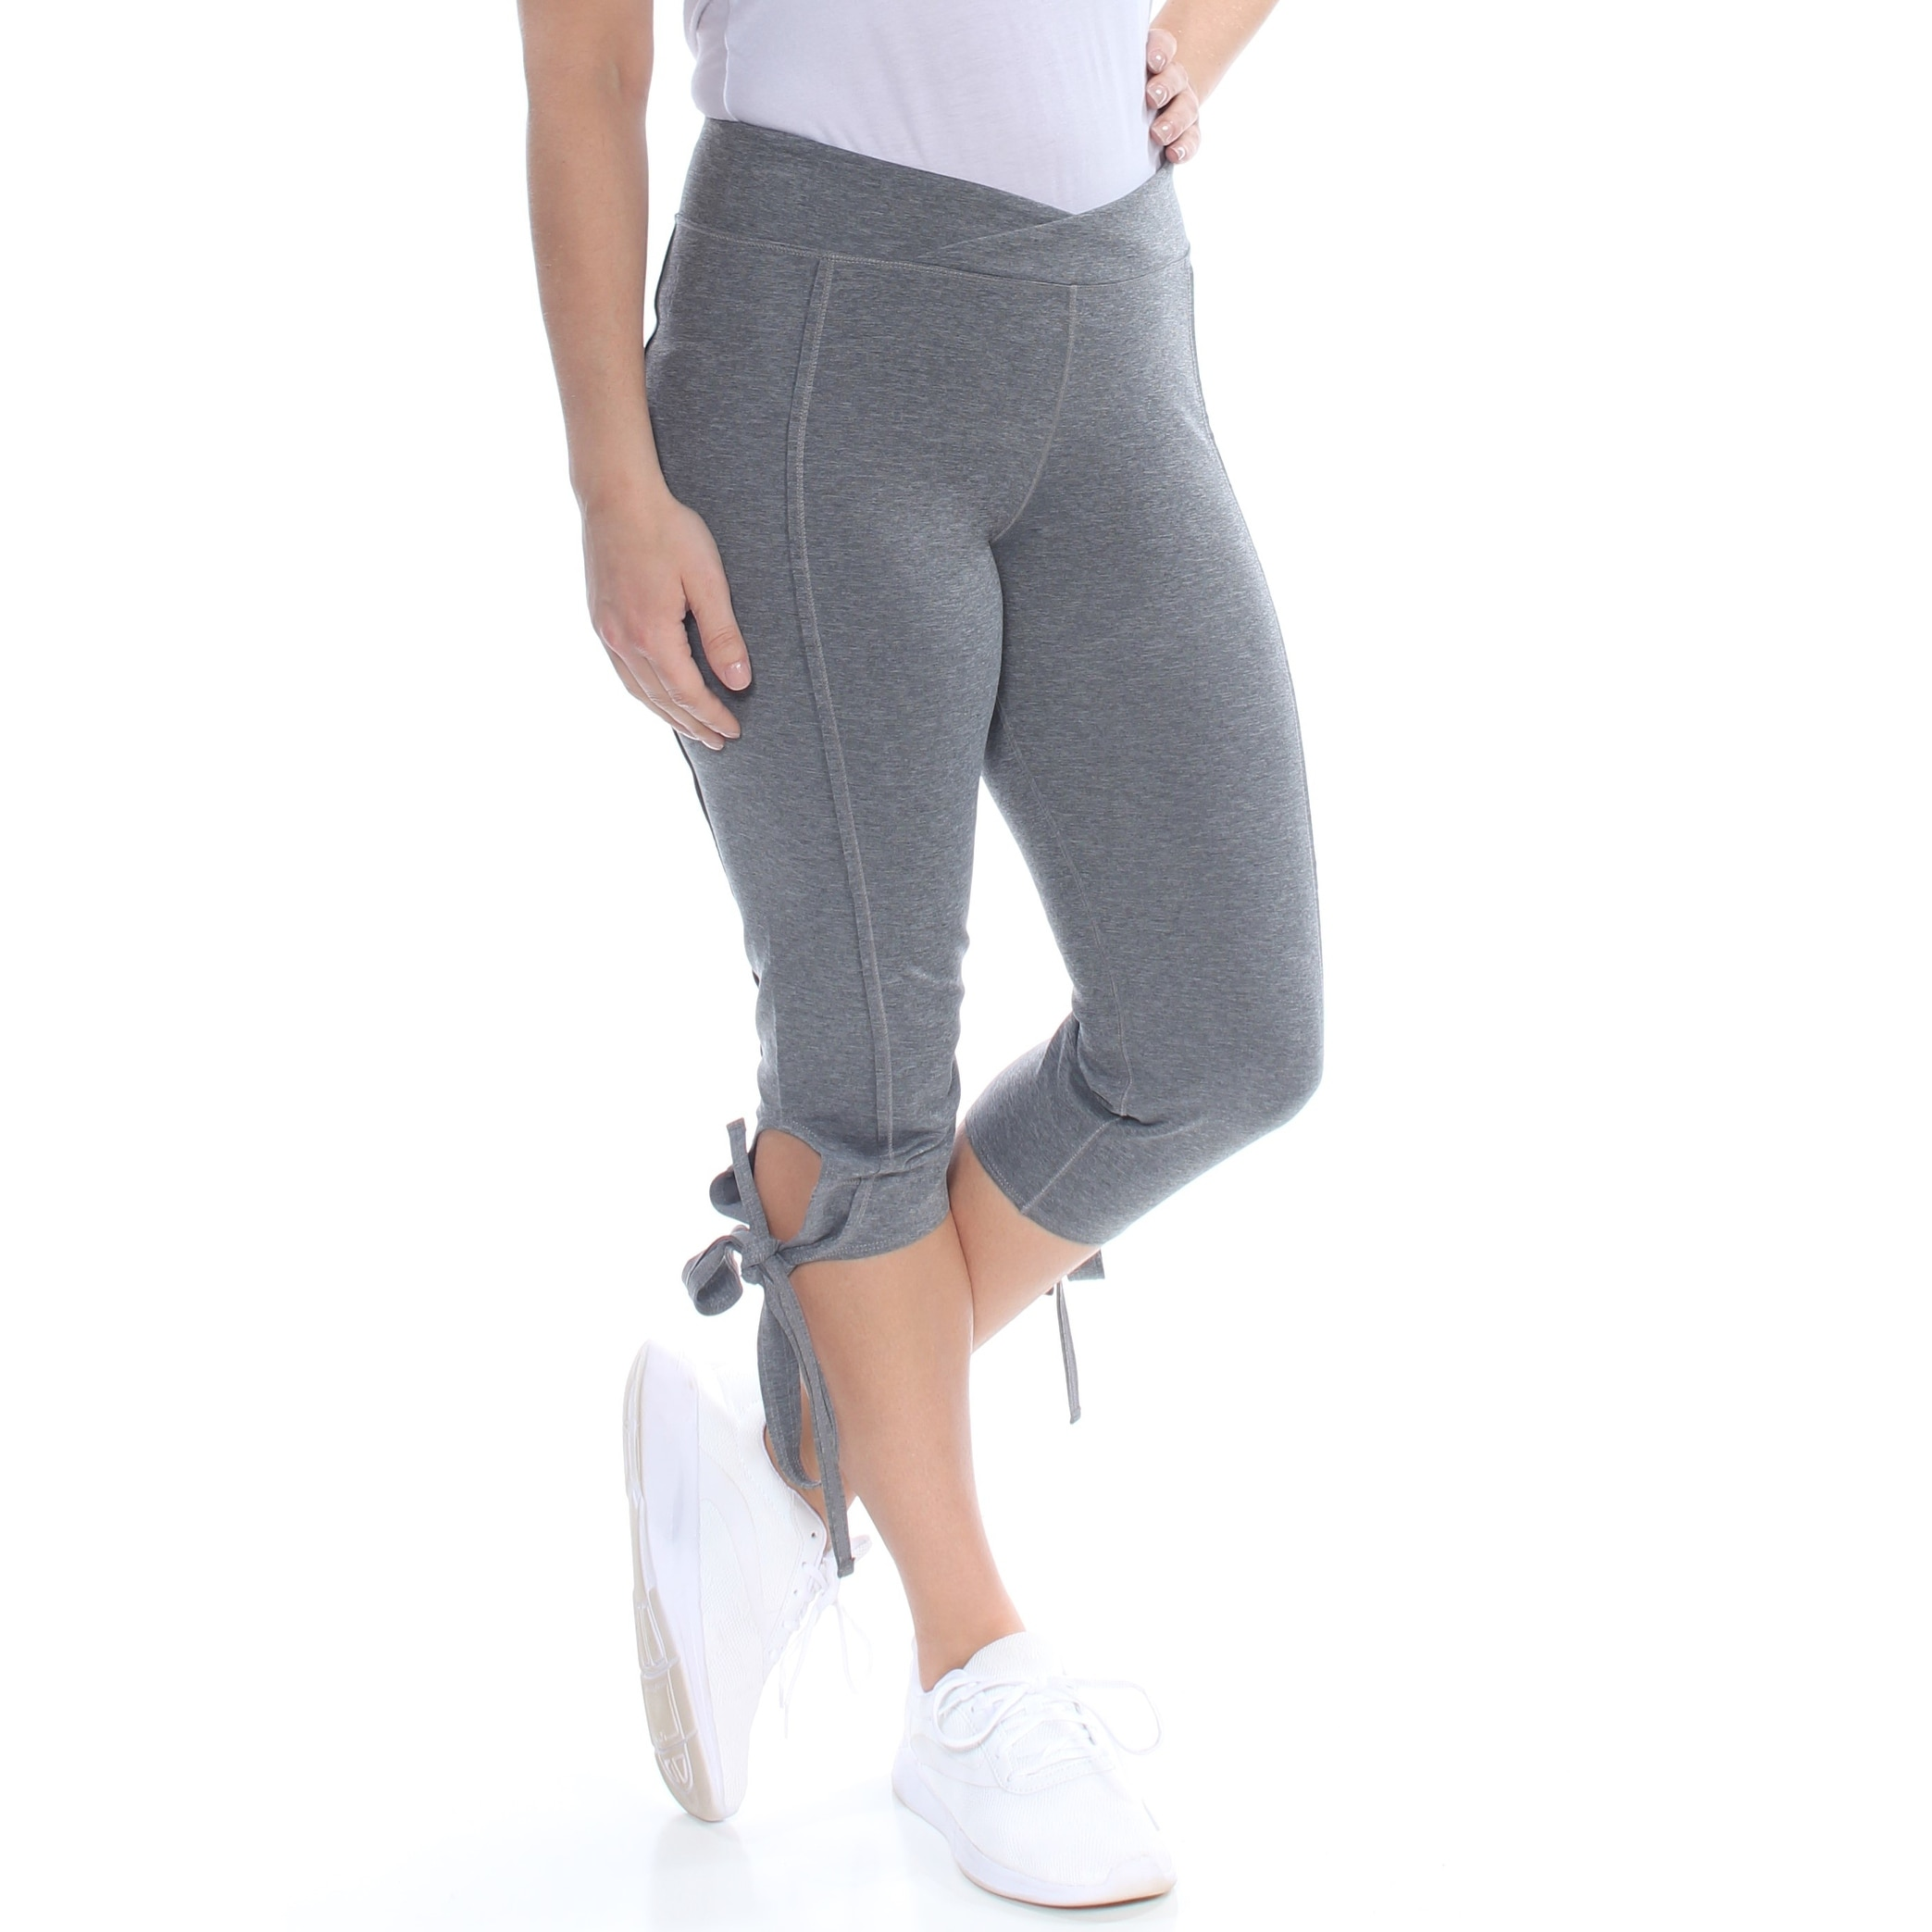 b7bc68abf0d27 Free People Pants | Find Great Women's Clothing Deals Shopping at Overstock